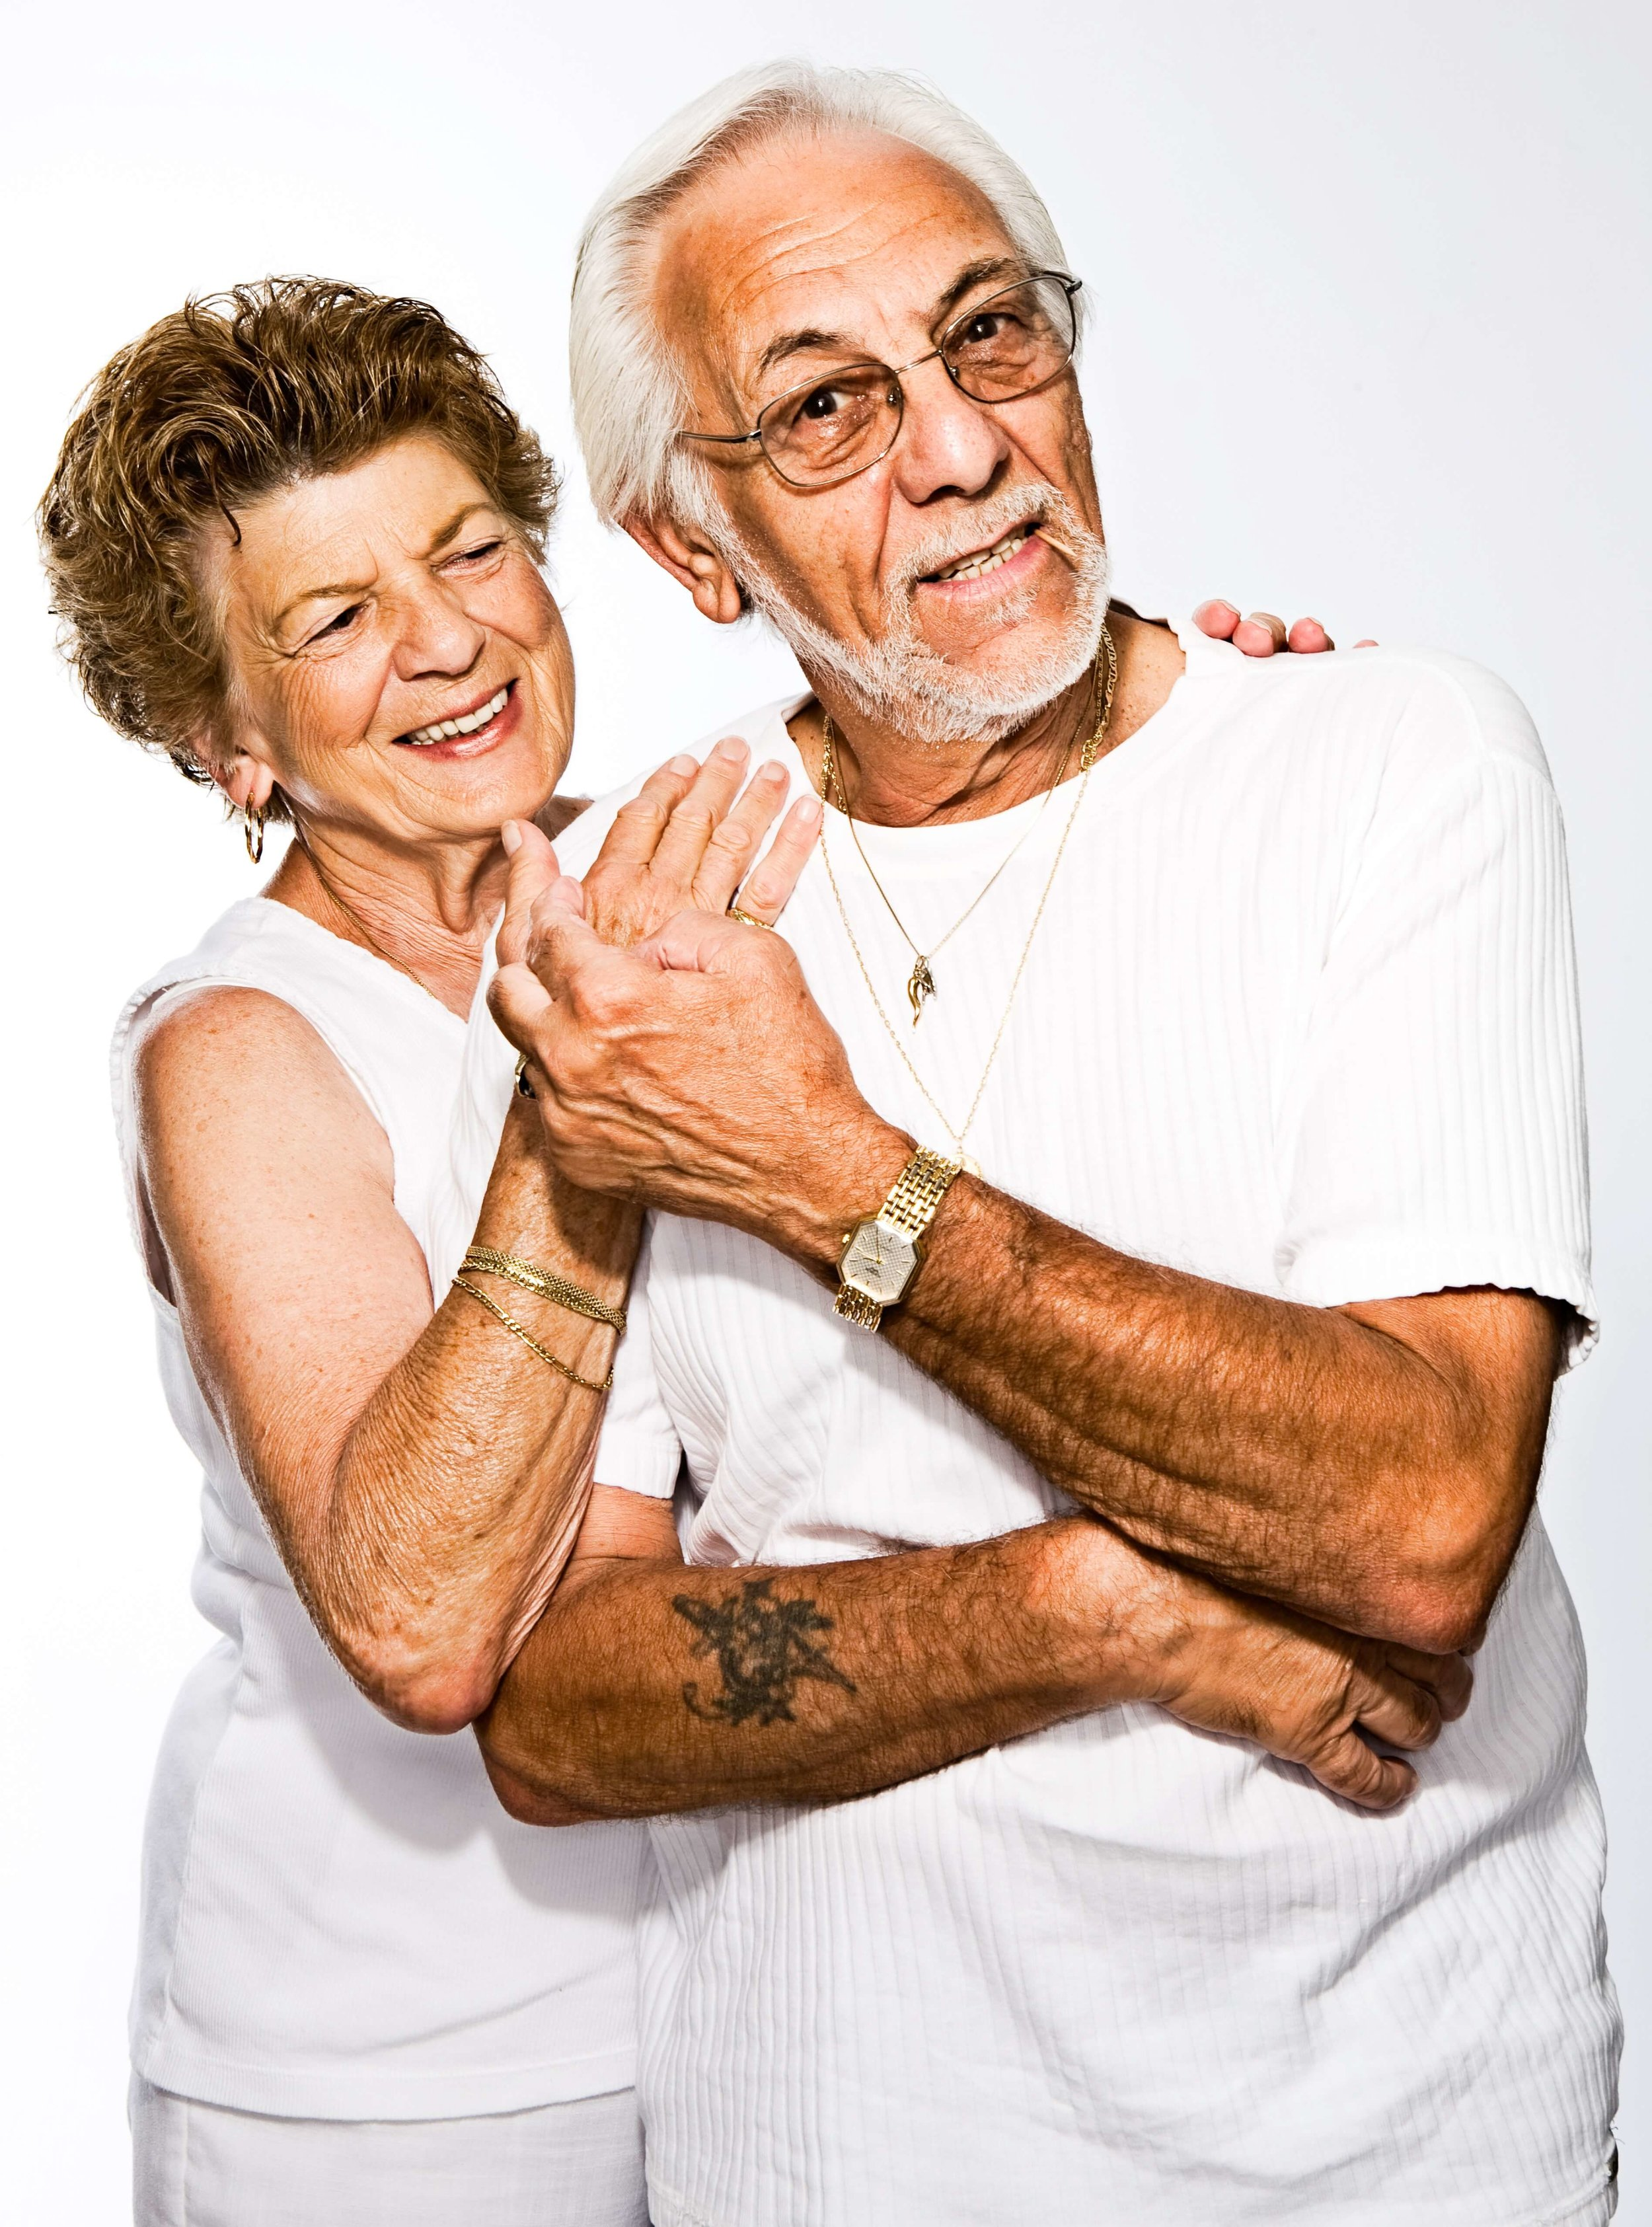 Elderly Couple In Need of Estate Planning Lawyer